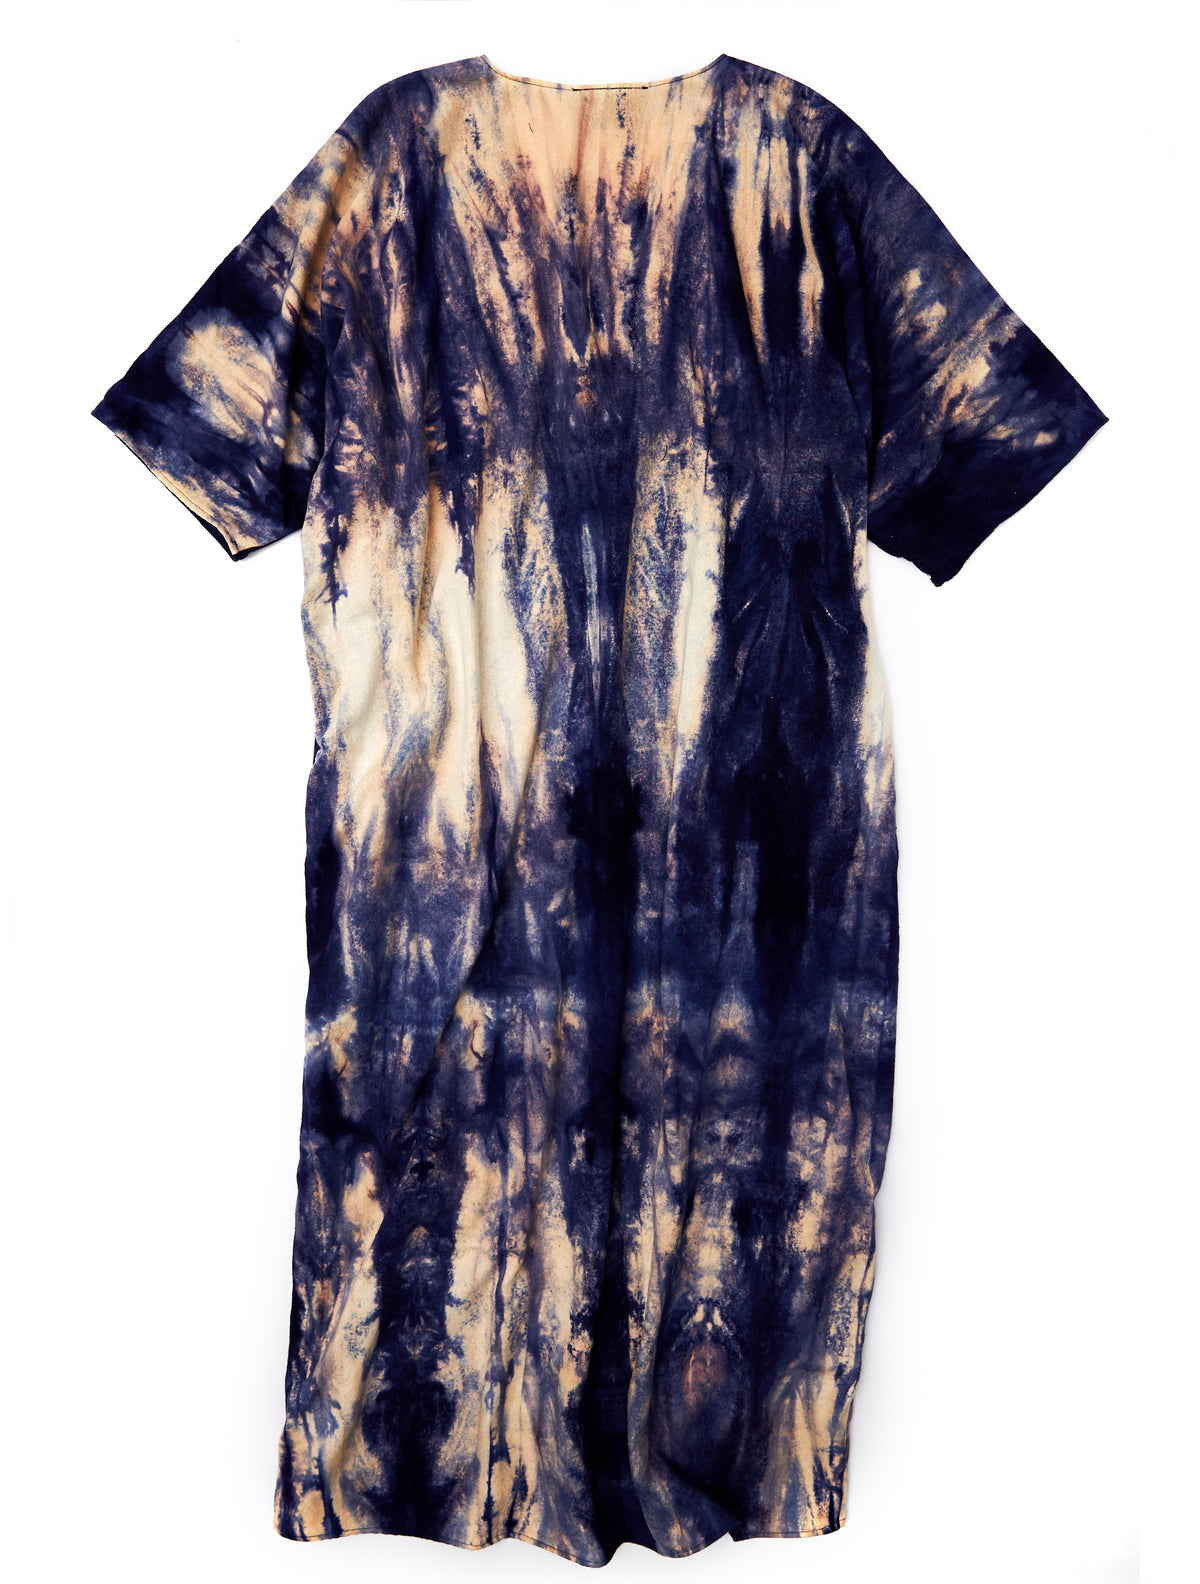 Nico Dress in Navy Silk - riverside tool & dye